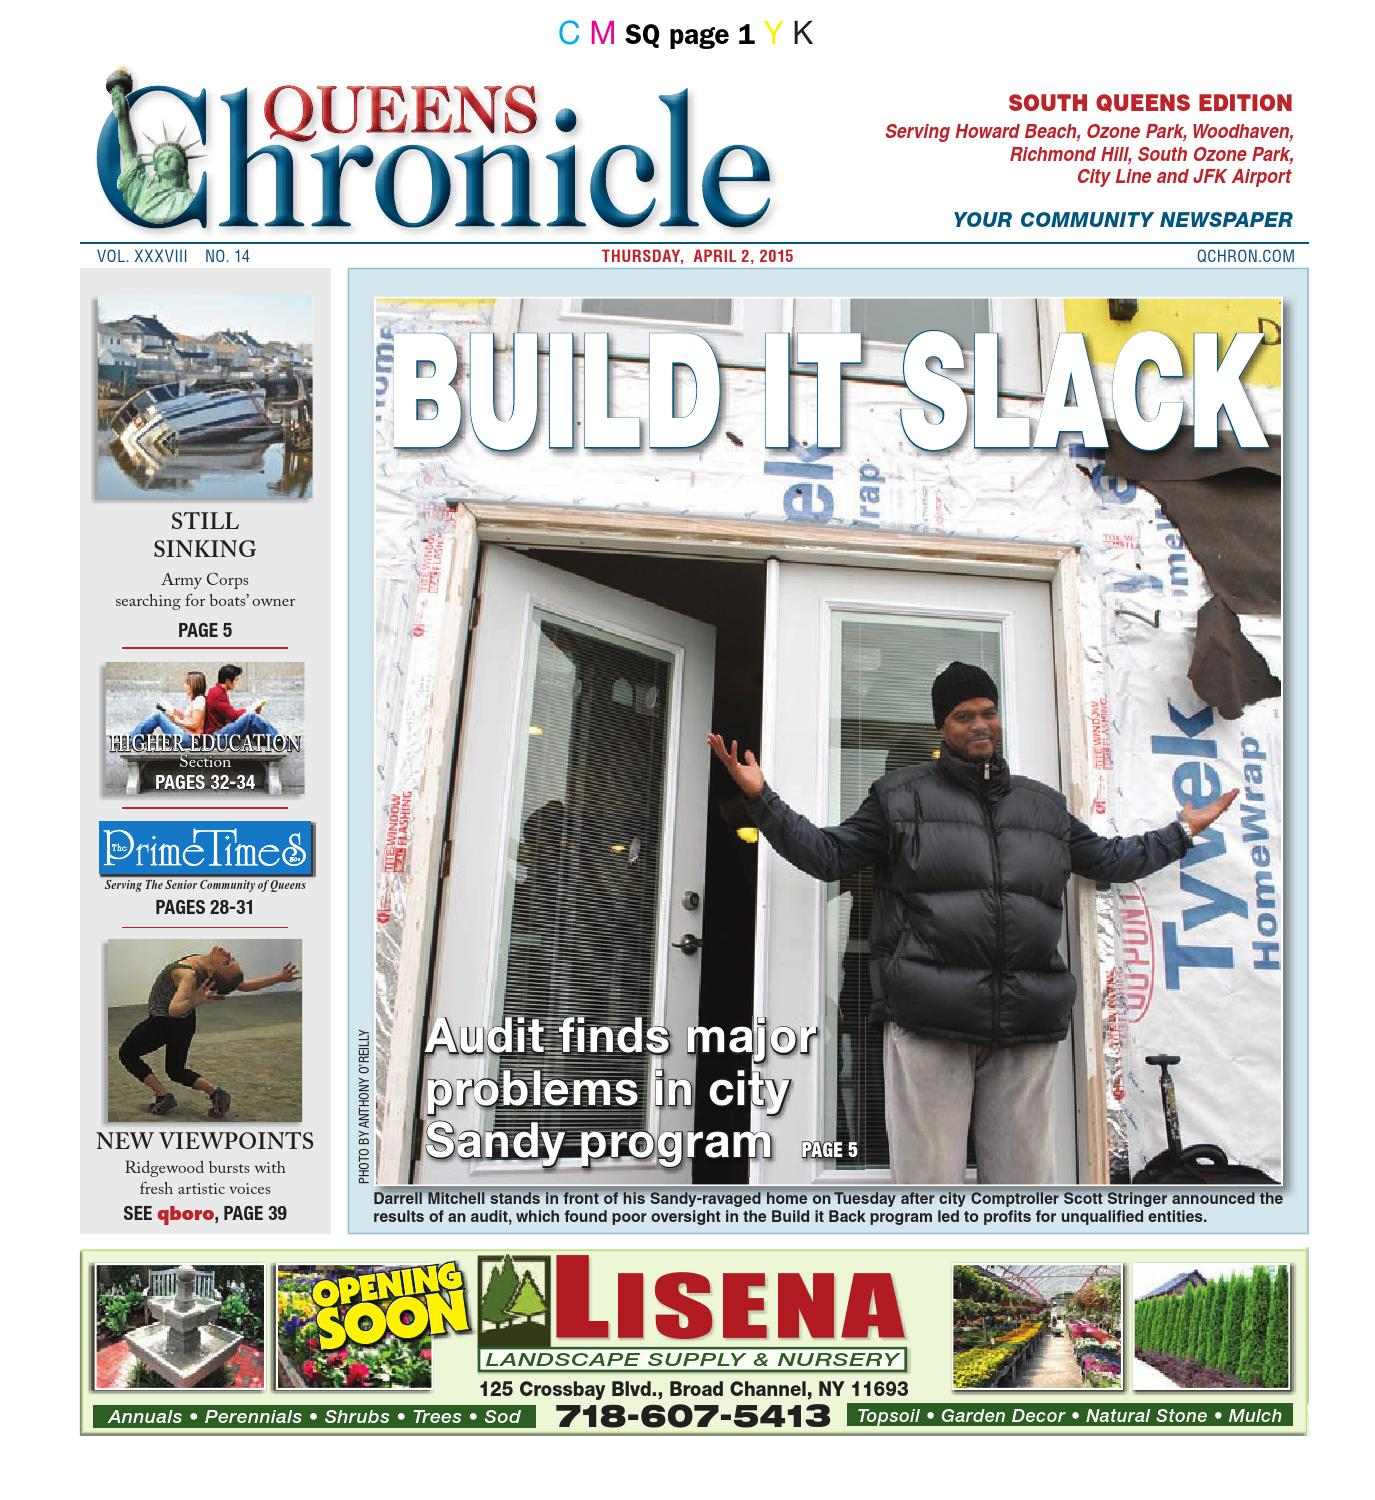 Queens chronicle south edition 04 02 15 by queens chronicle issuu aiddatafo Choice Image